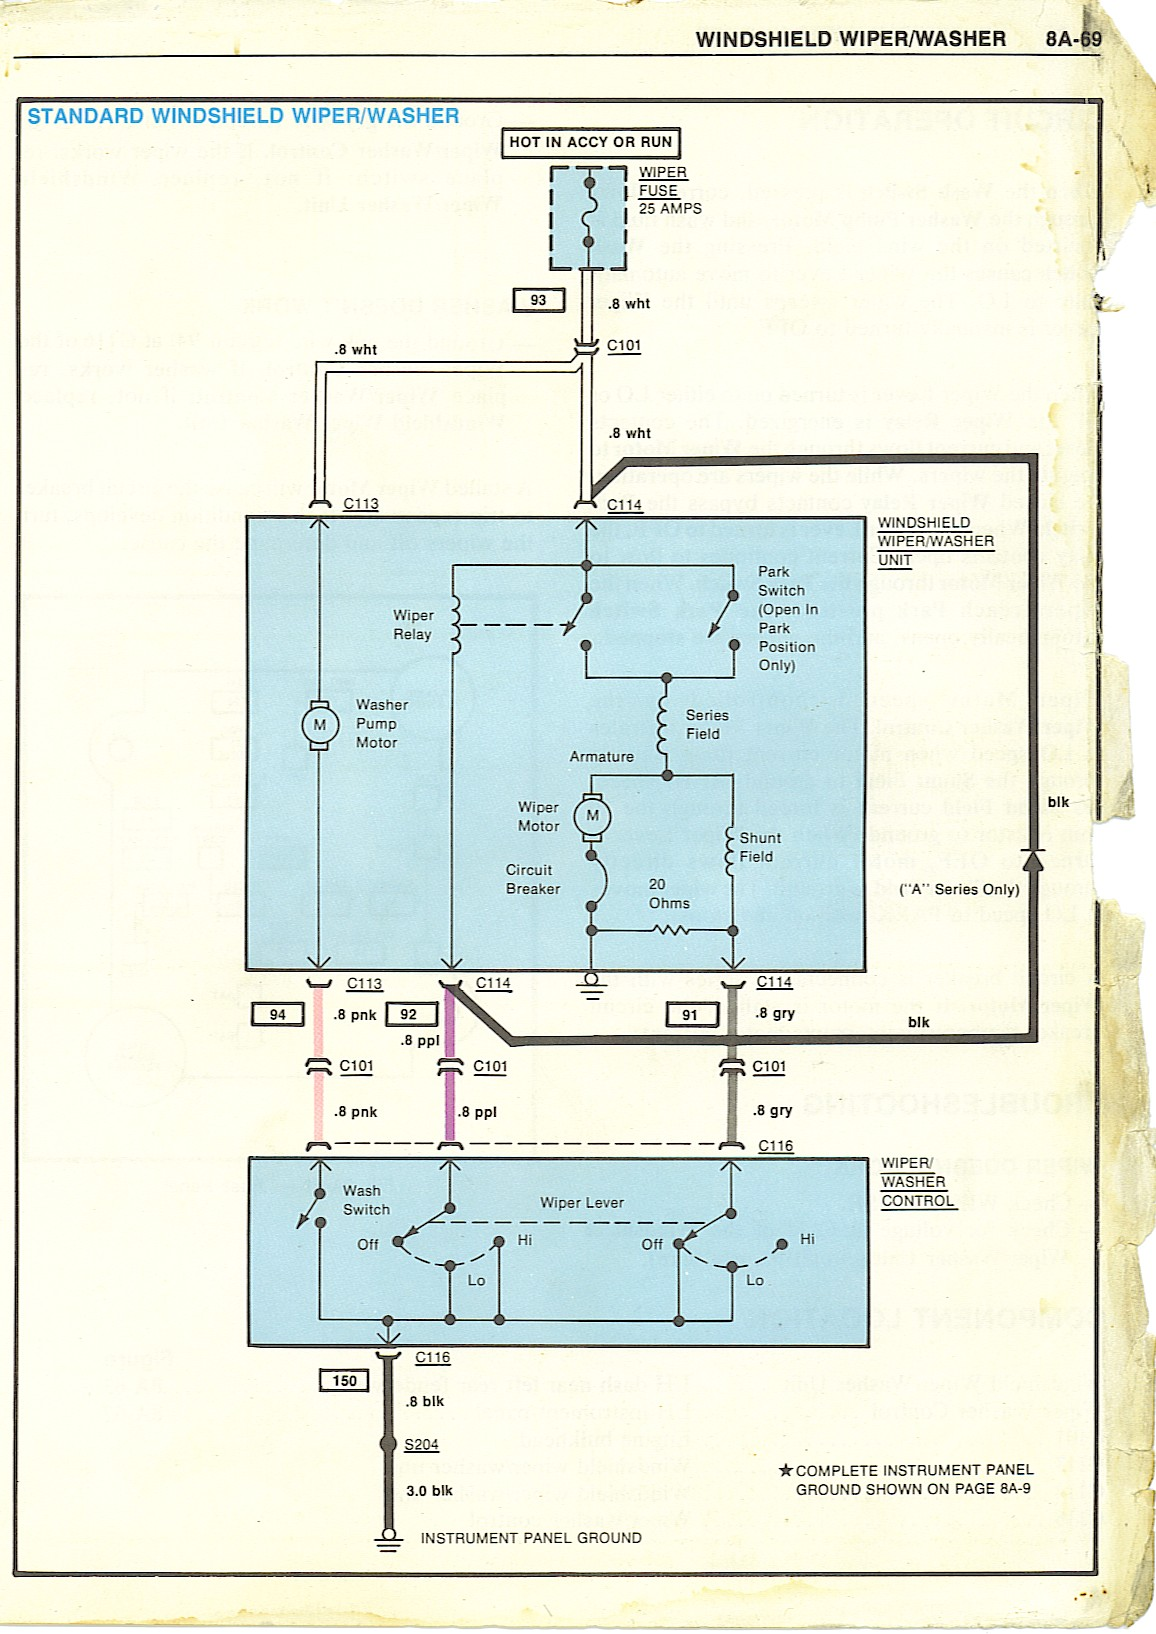 hight resolution of 87 chevy monte carlo wiring diagram schematic wiring library chevy impala belt diagram moreover 1987 chevy monte carlo ss aerocoupe